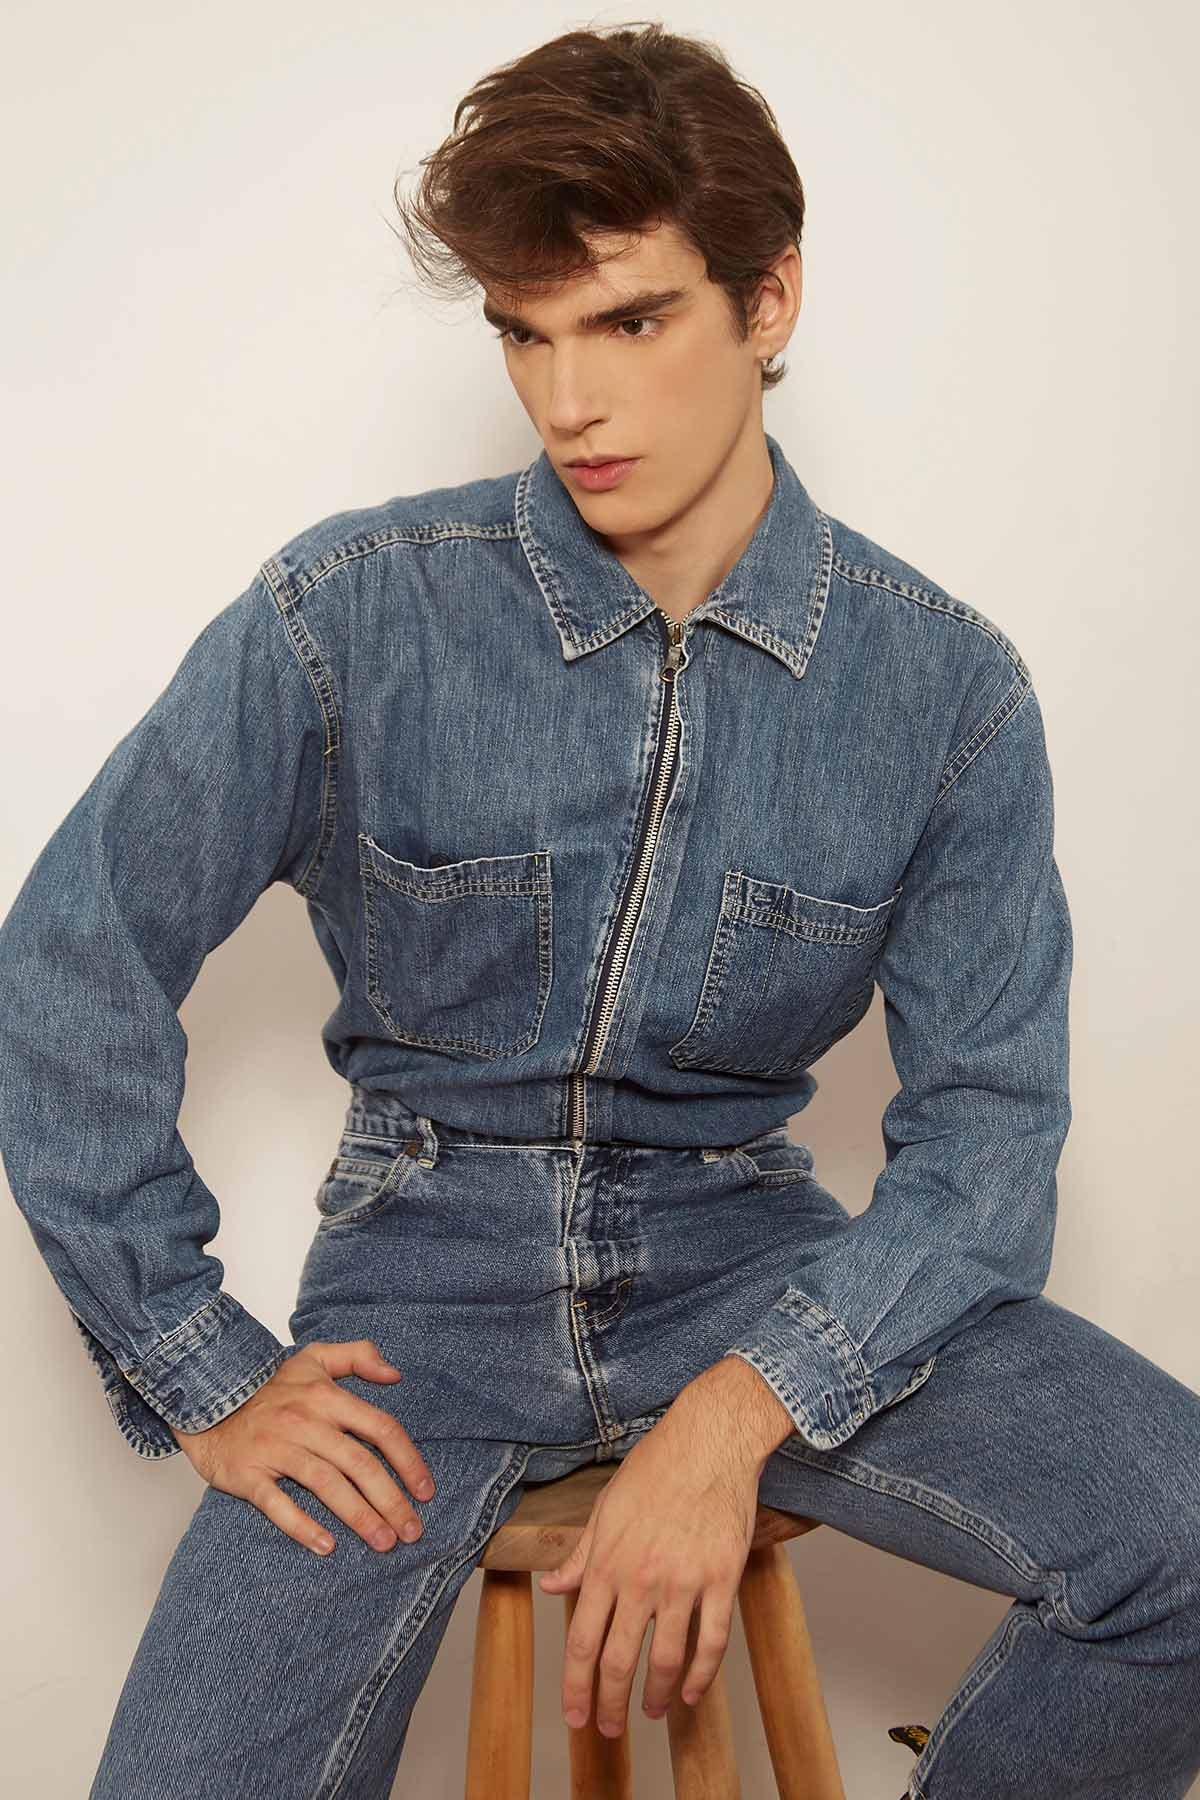 Yuri Merli by Anderson Bruno for Brazilian Male Model